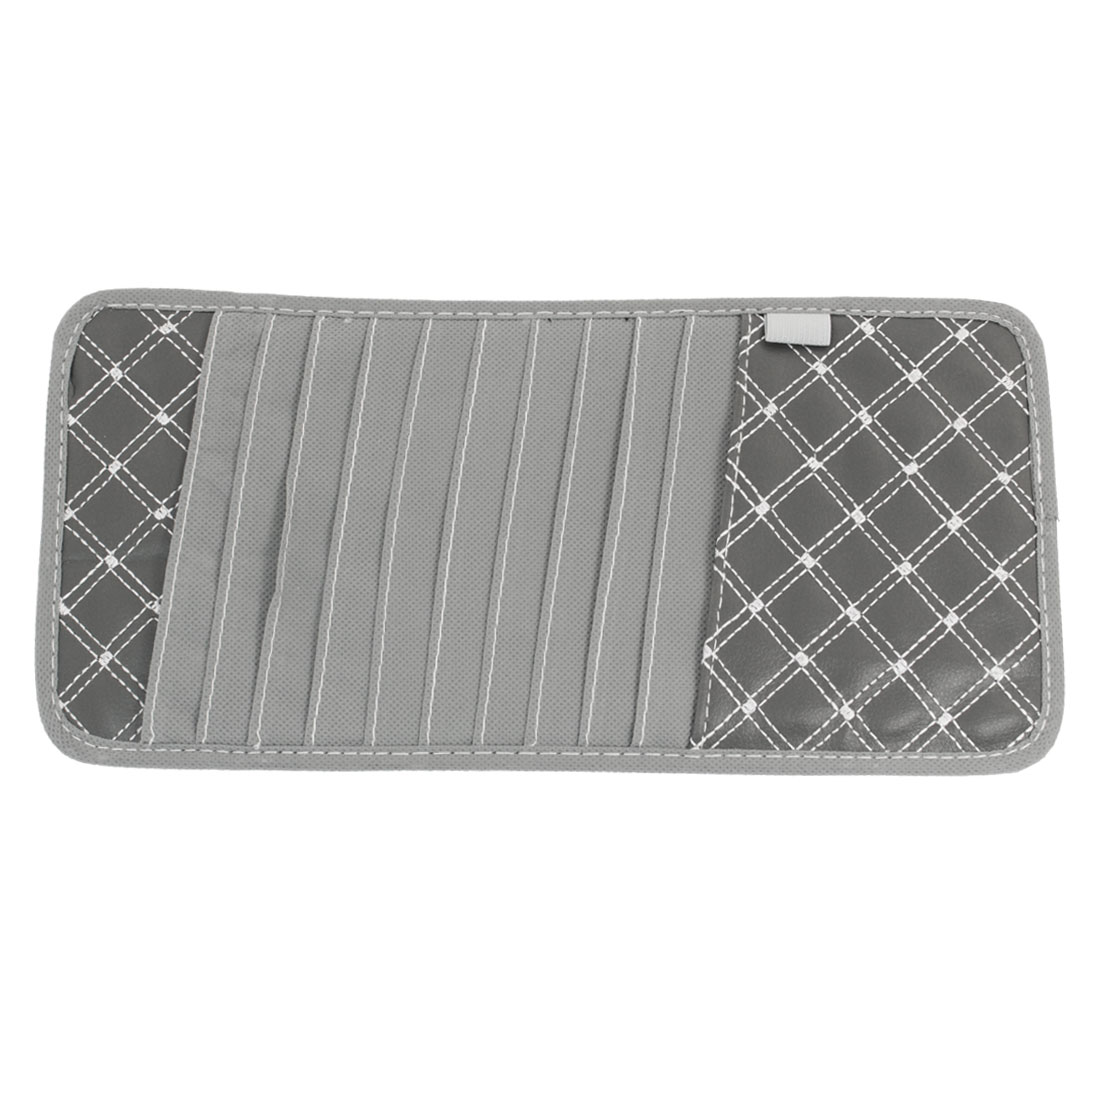 Car Sun Visor Grid Pattern Faux Leather 11 CD DVD Storage Holder Card Case Gray